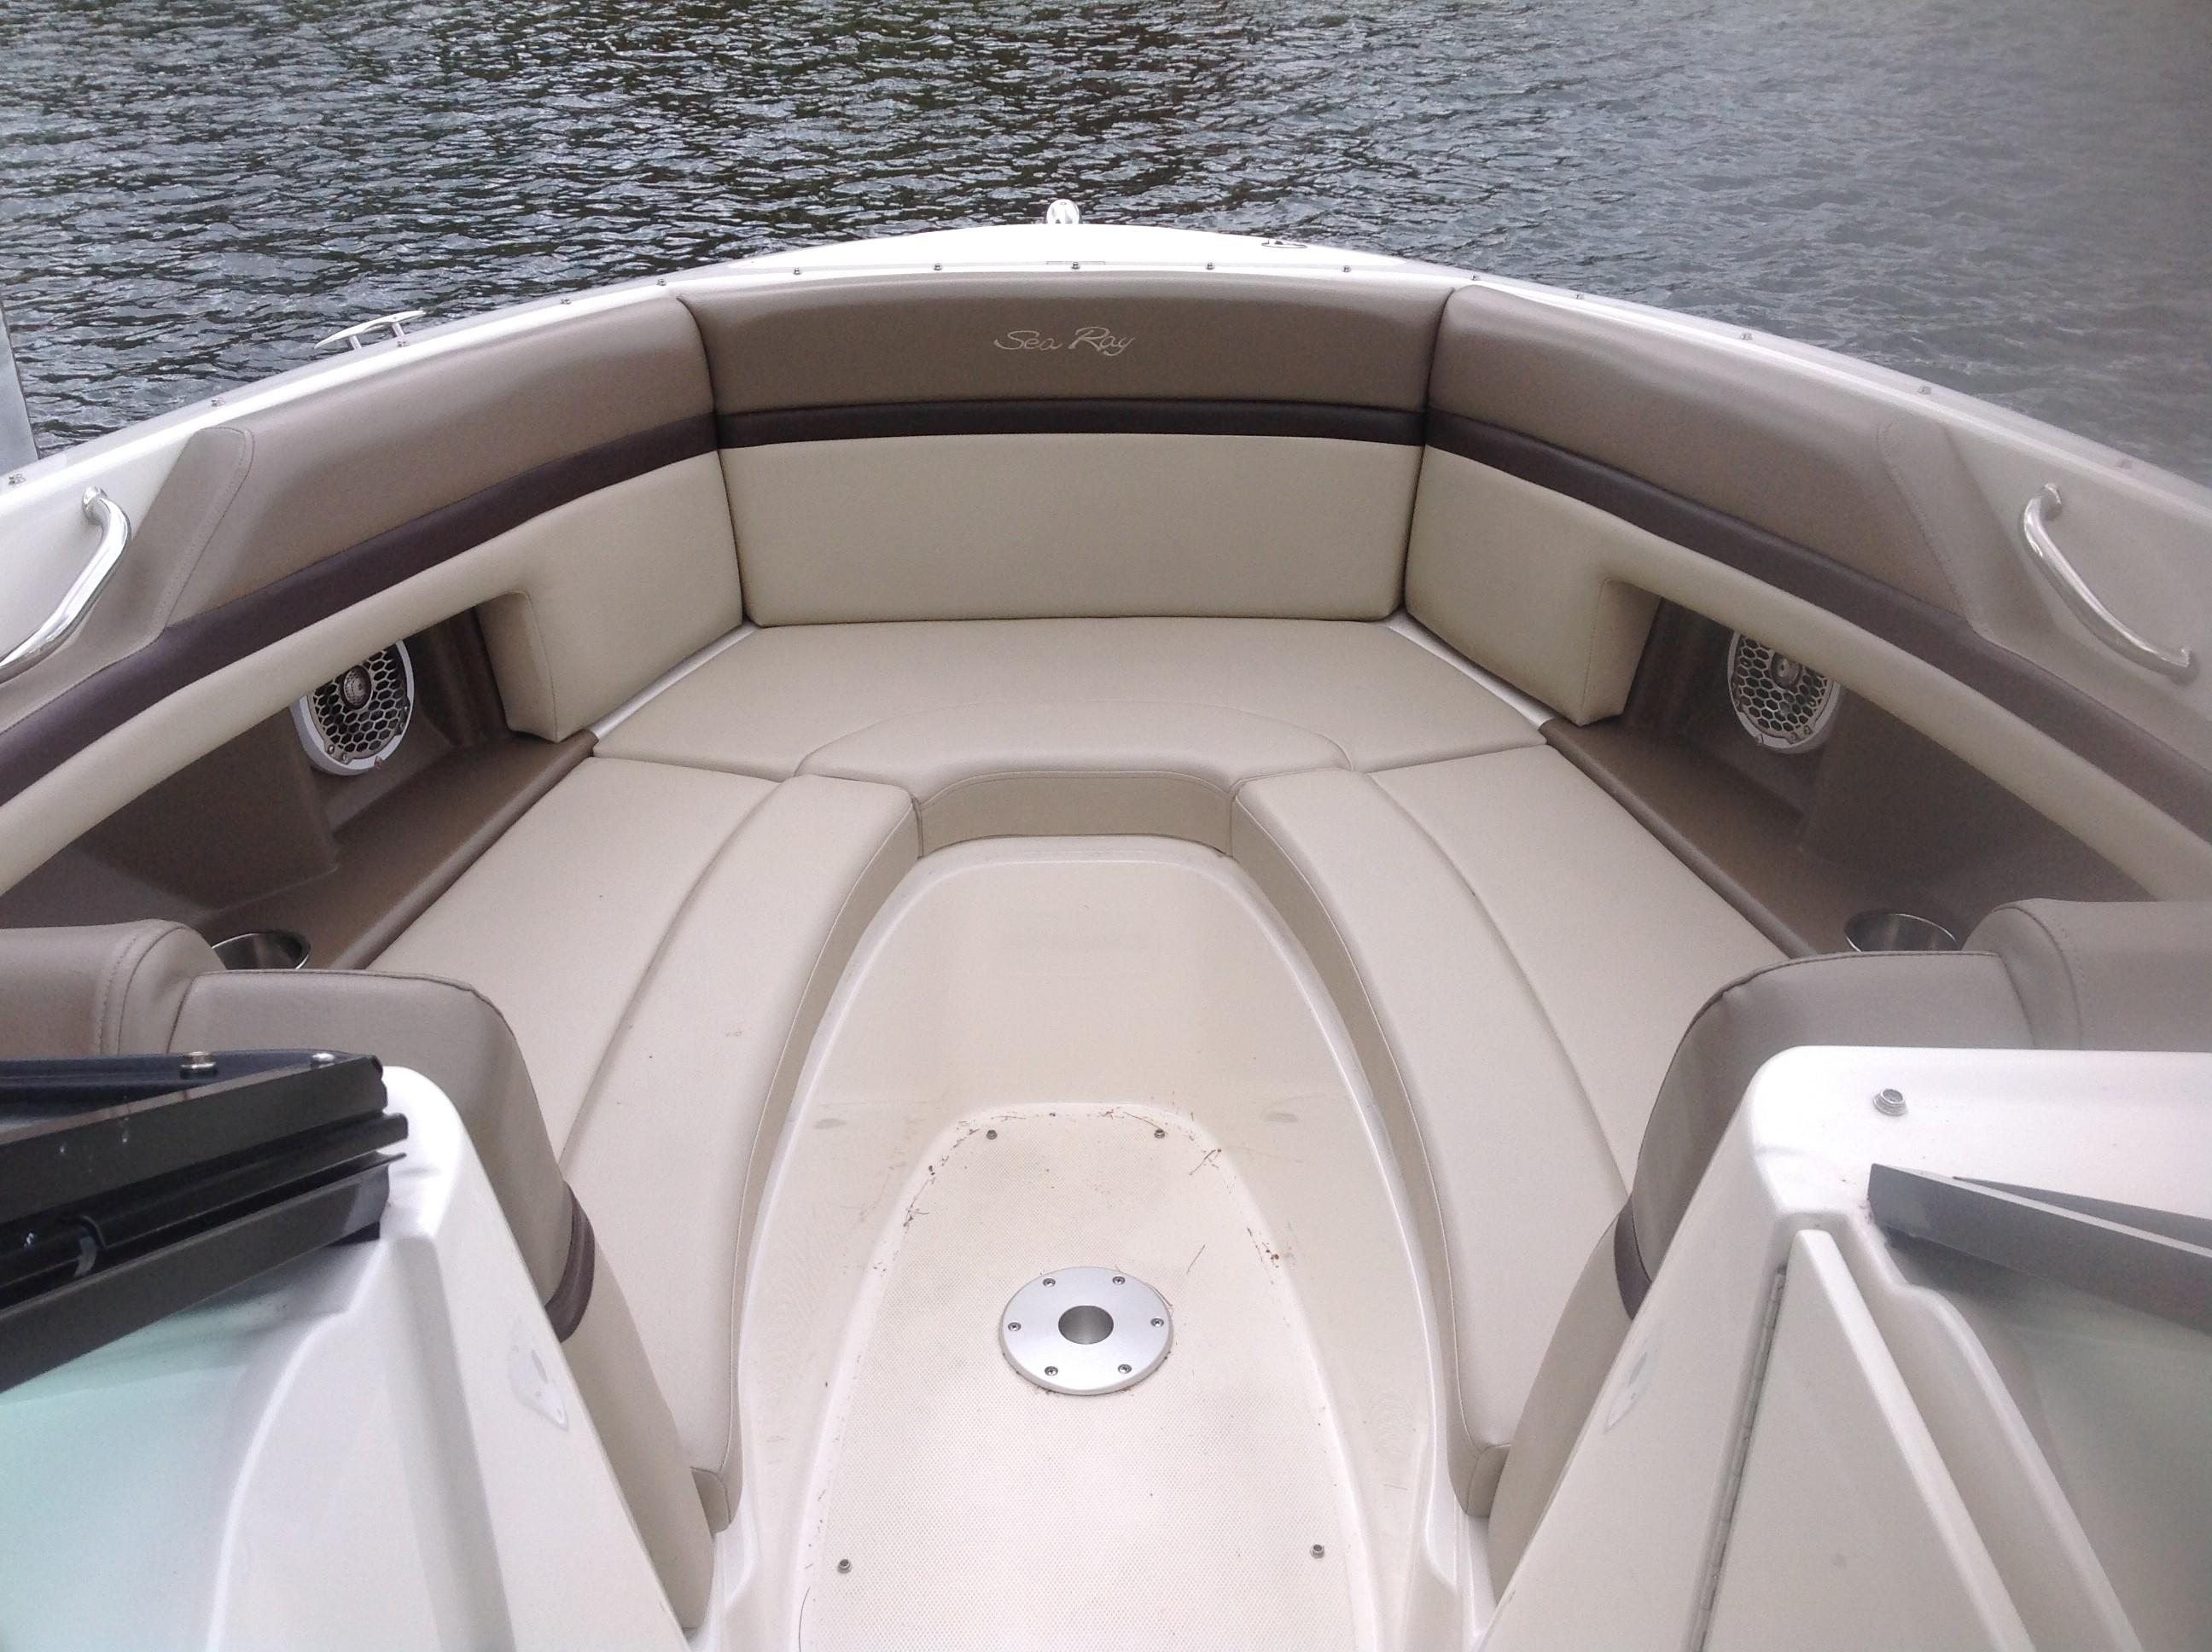 2011 Sea Ray boat for sale, model of the boat is 270 SLX & Image # 2 of 13